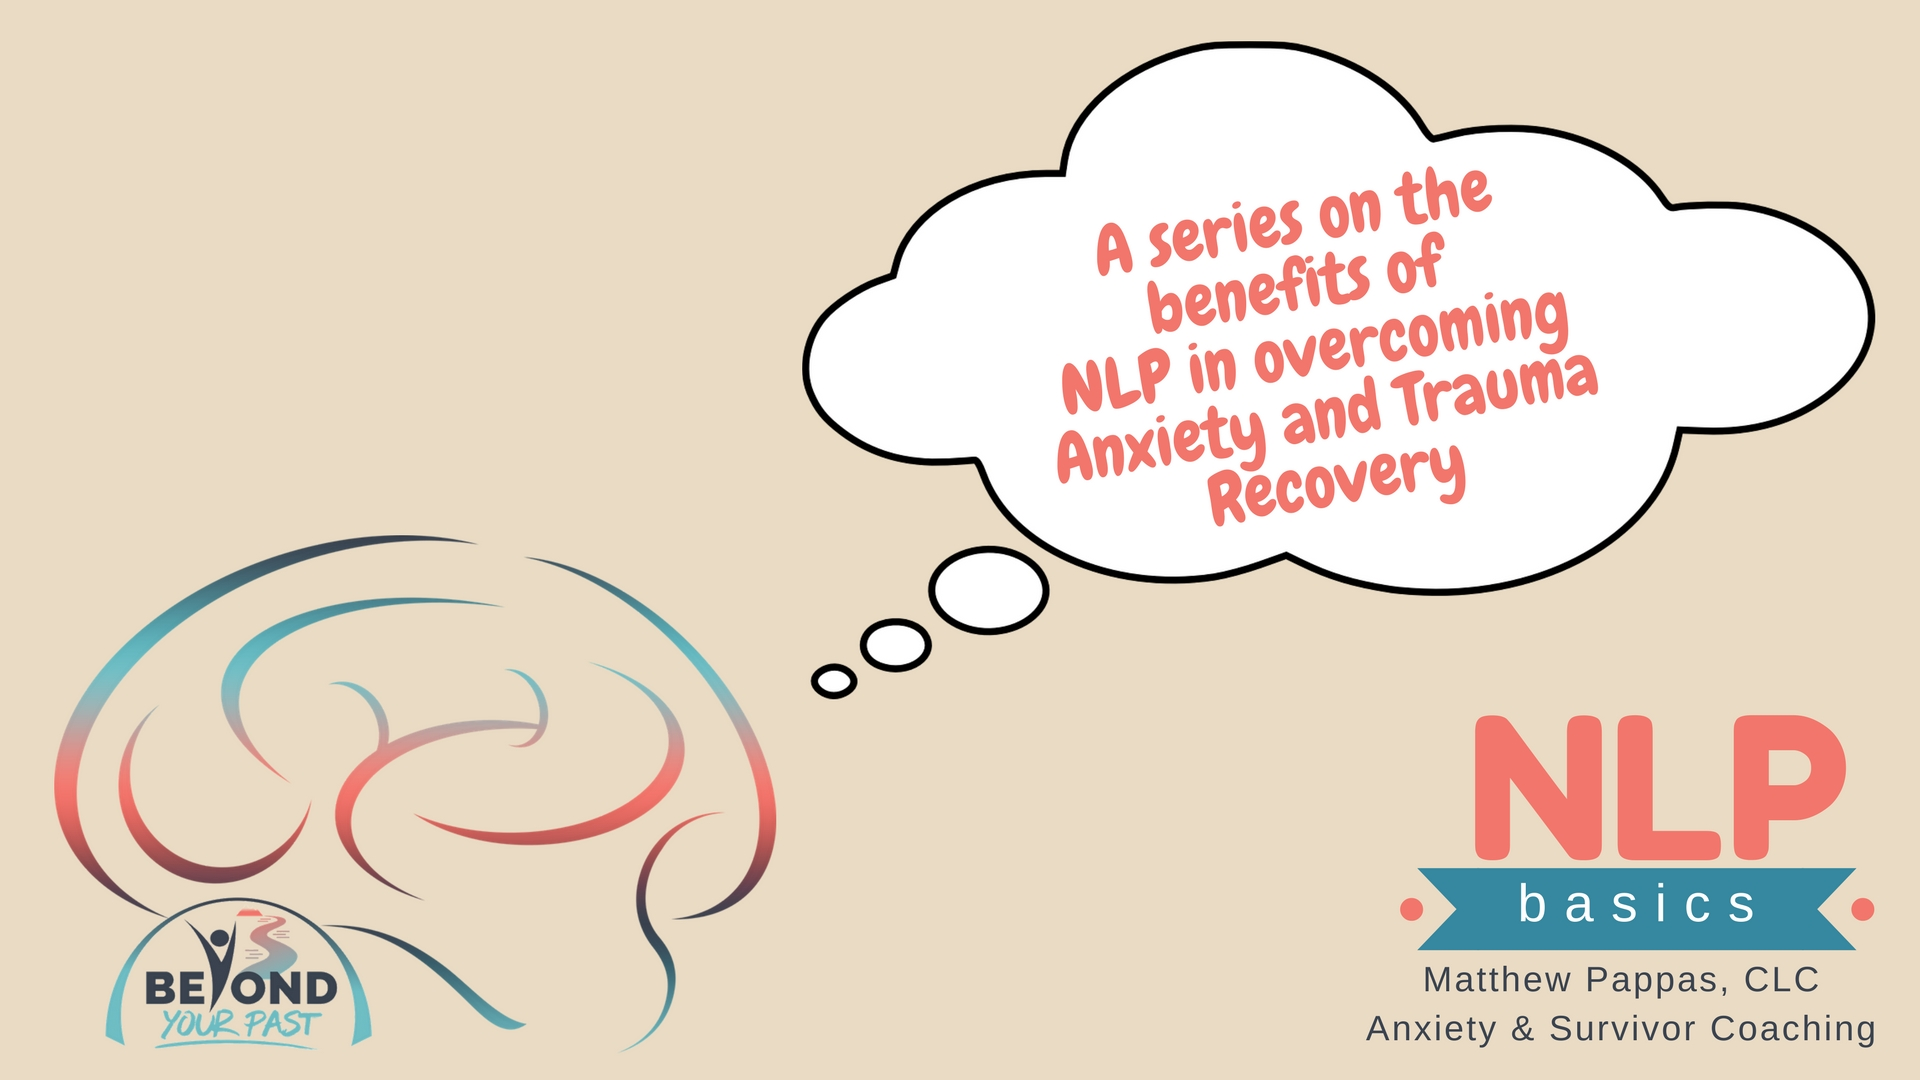 NLP Basics - Beyond Your Past